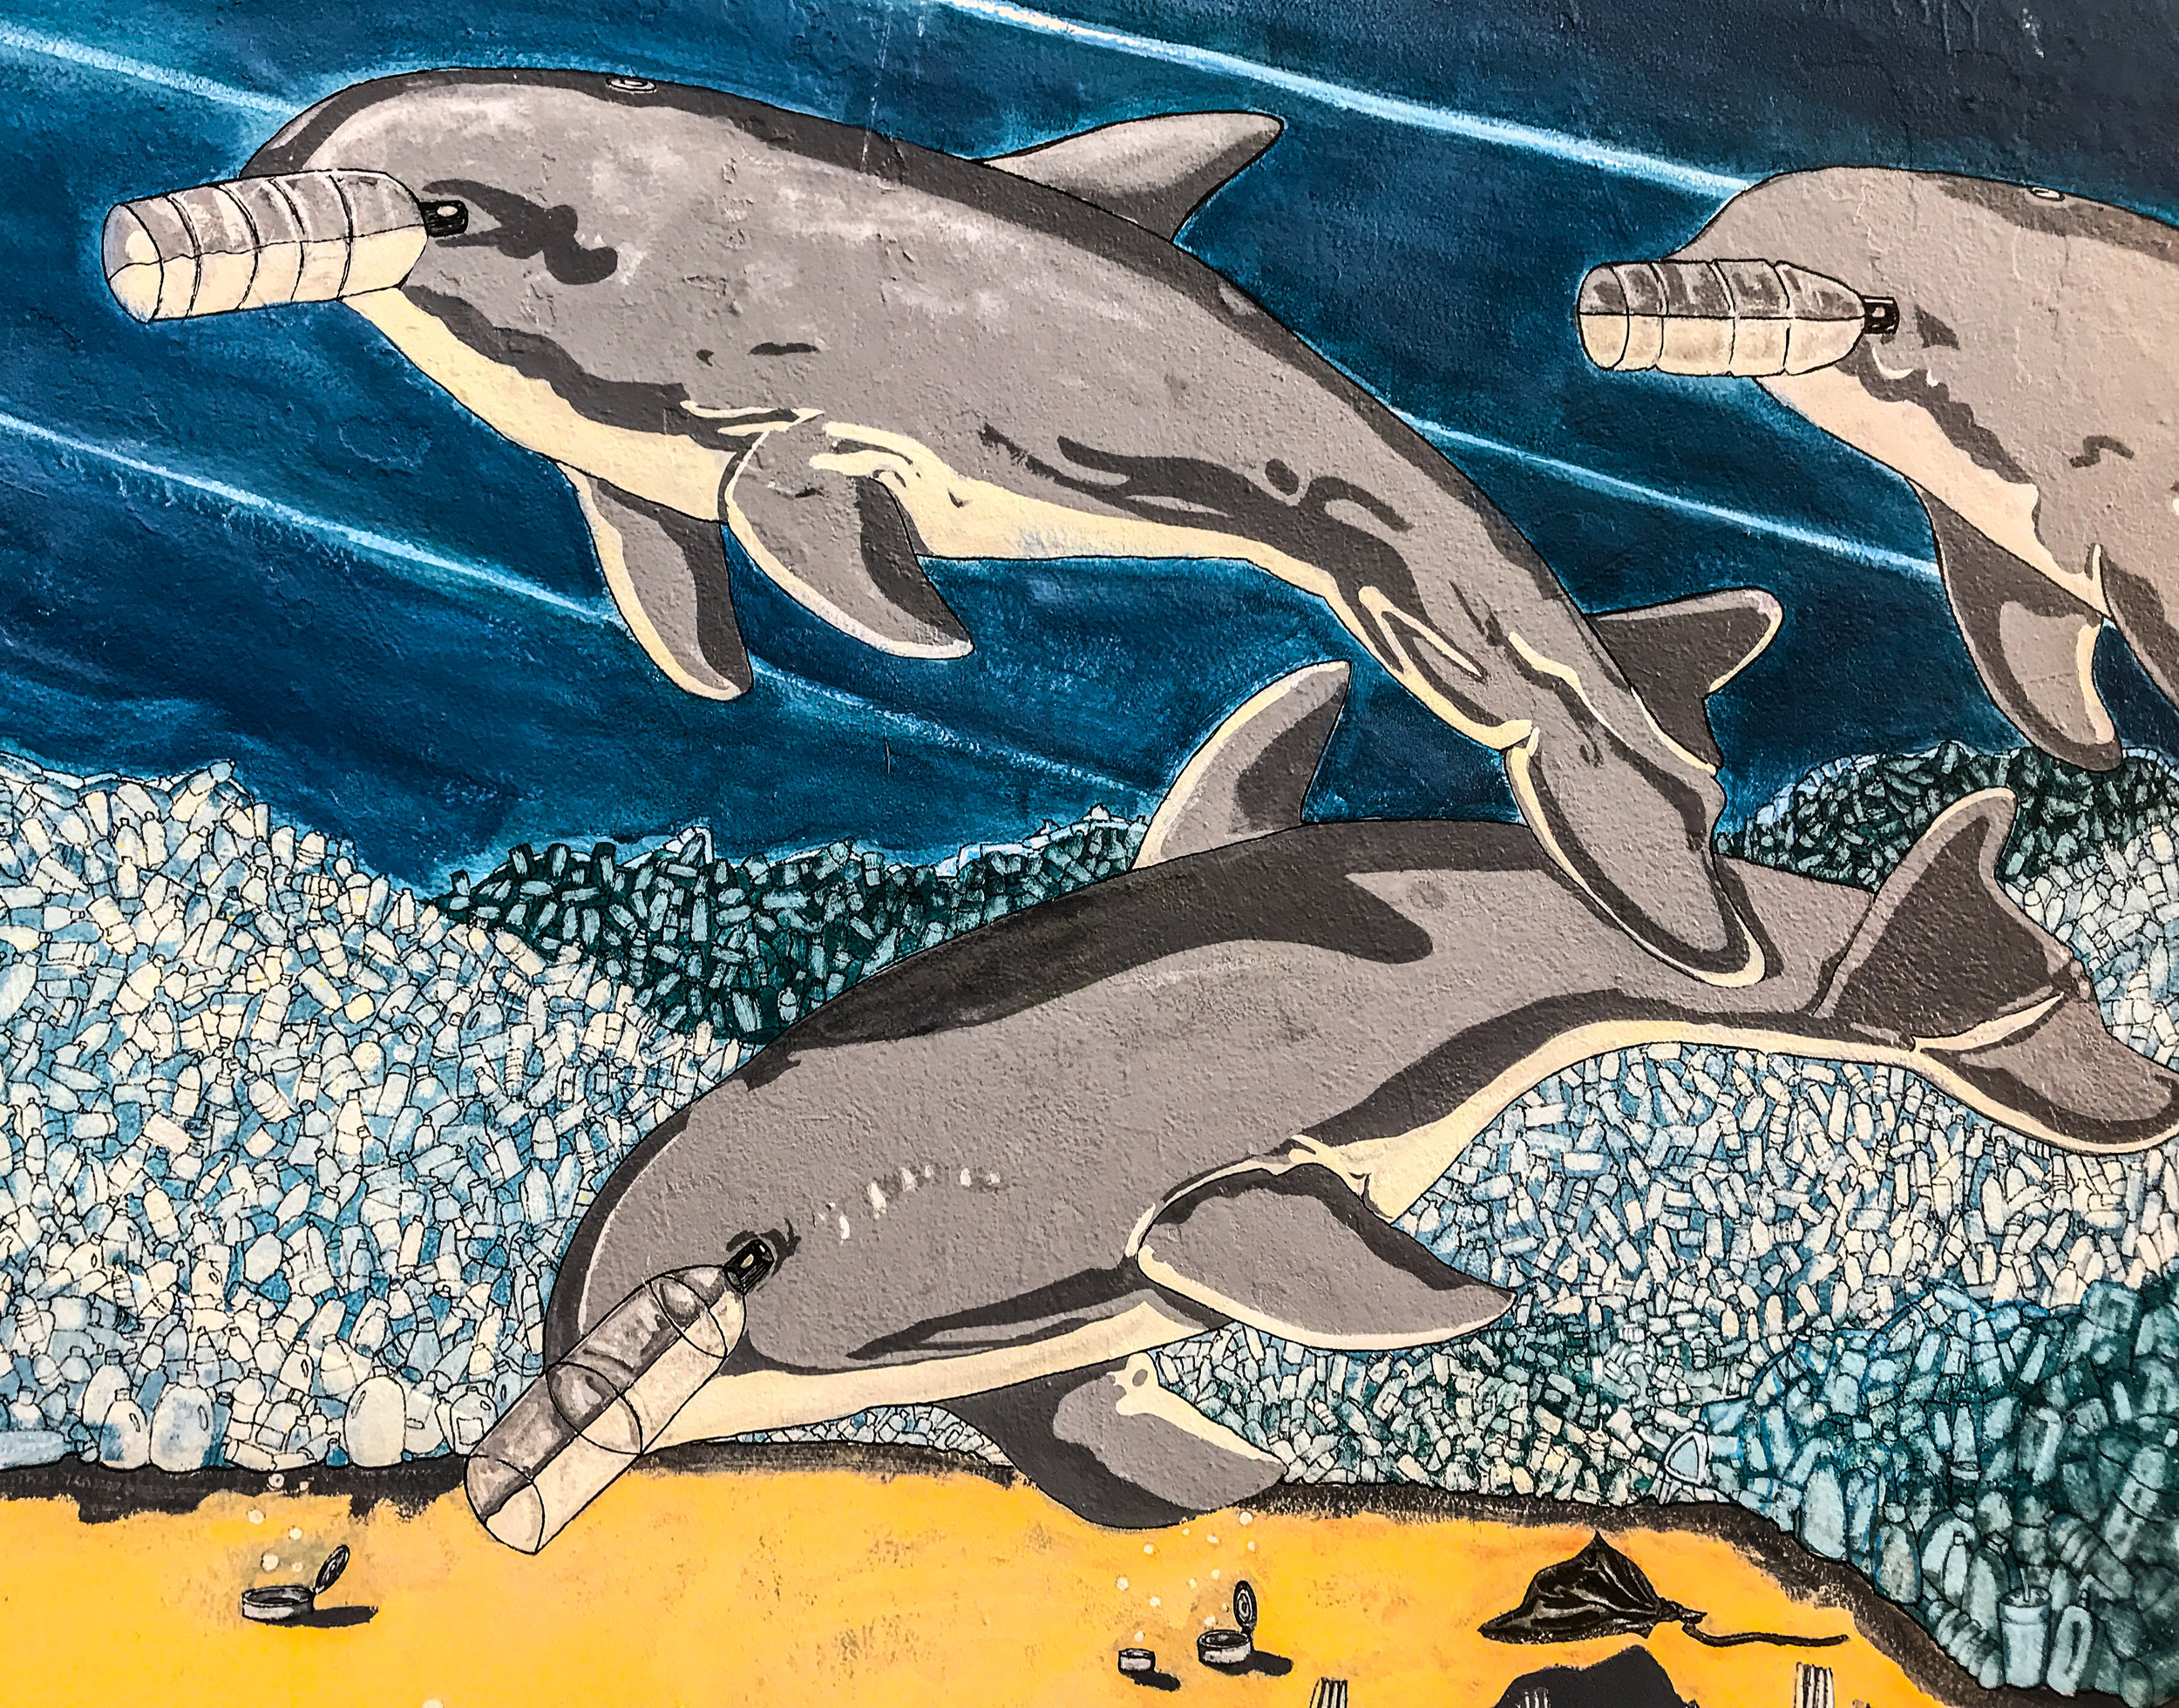 Inset from Tom Manco's mural at the New York Aquarium. Photo Credit: Liz Summit, 2017